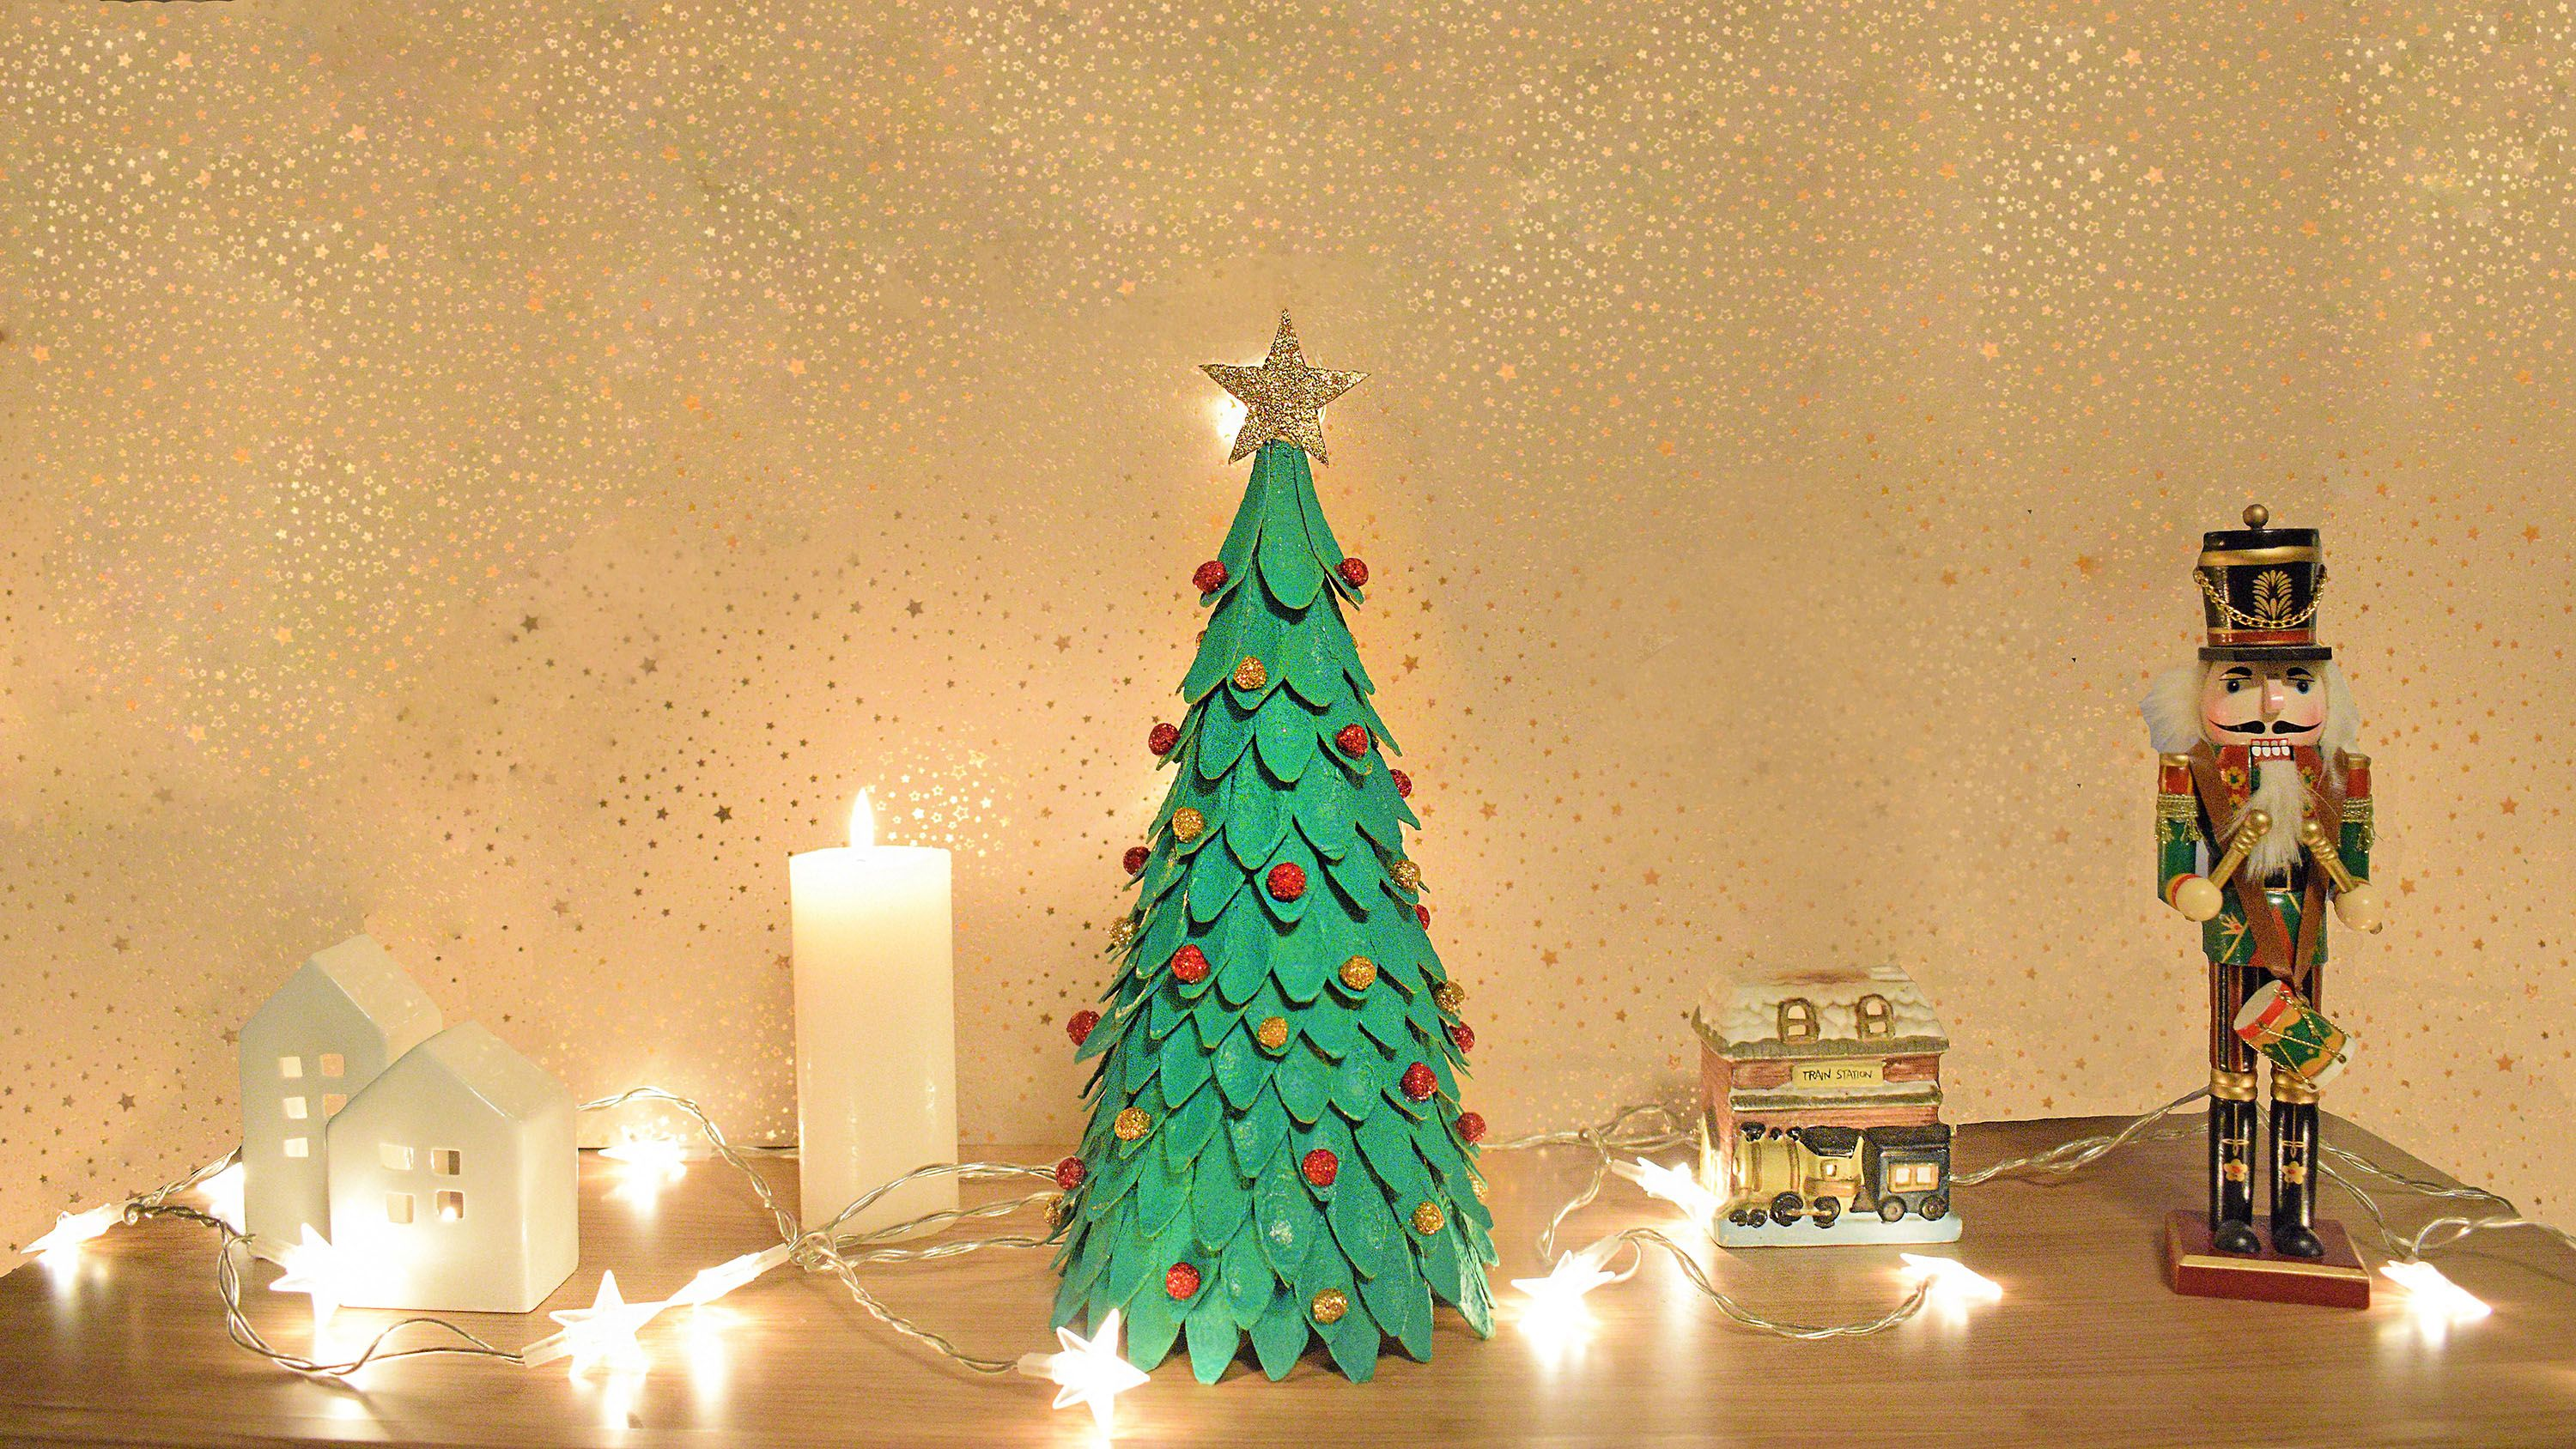 How To Make Christmas Tree With Egg Carton Amazing Home Decor Diy Recycled Ornaments Video How To Make Christmas Tree Diy Christmas Tree Christmas Tree